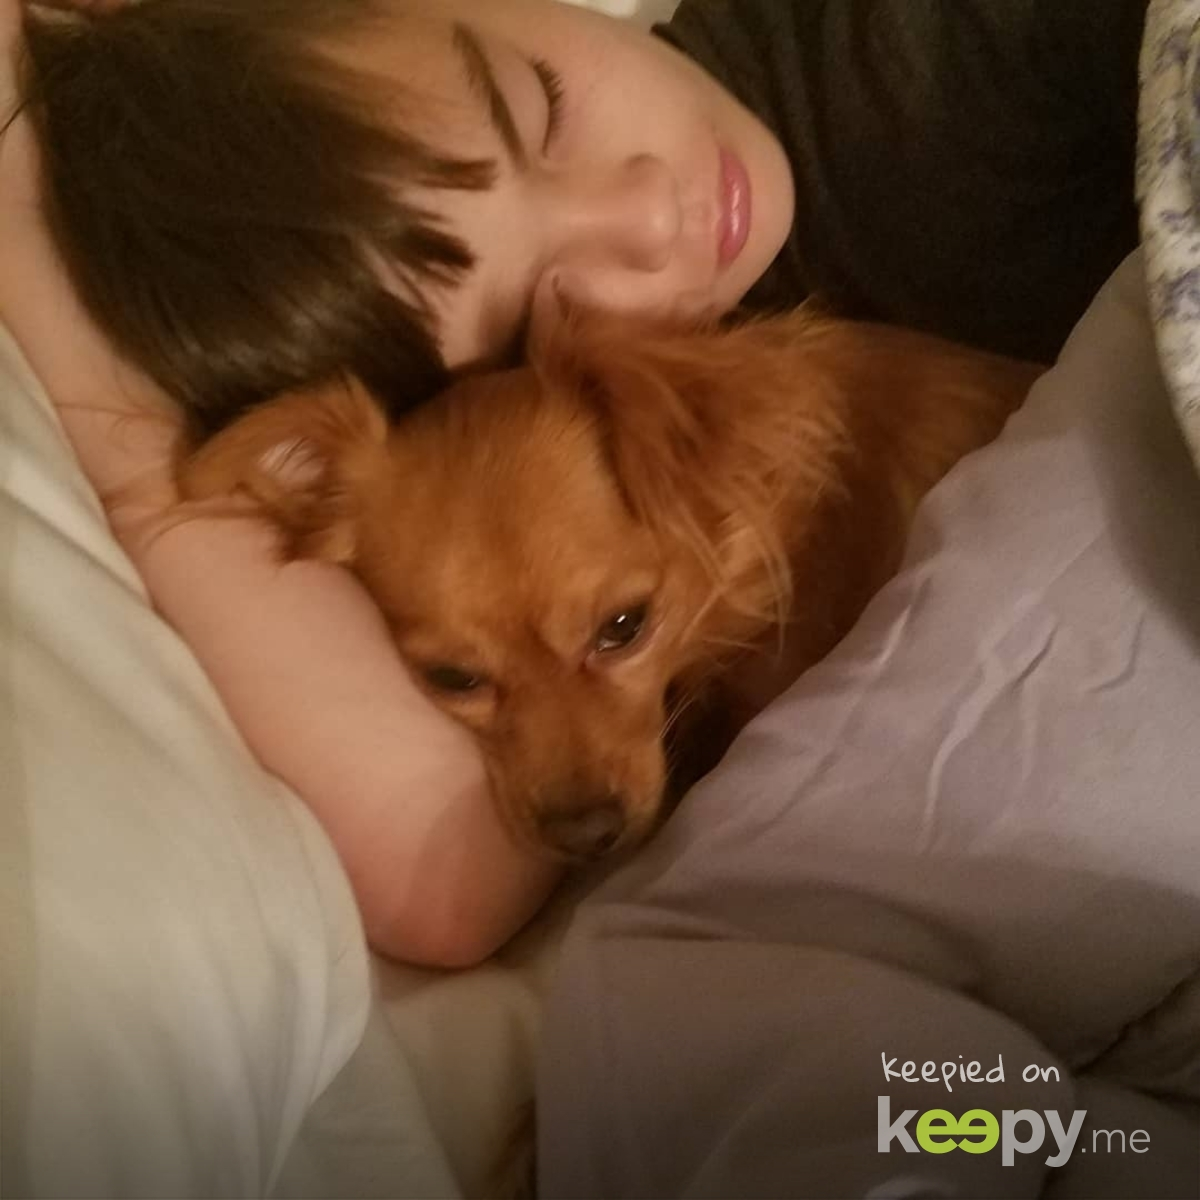 A boy and his dog » Keepy.me